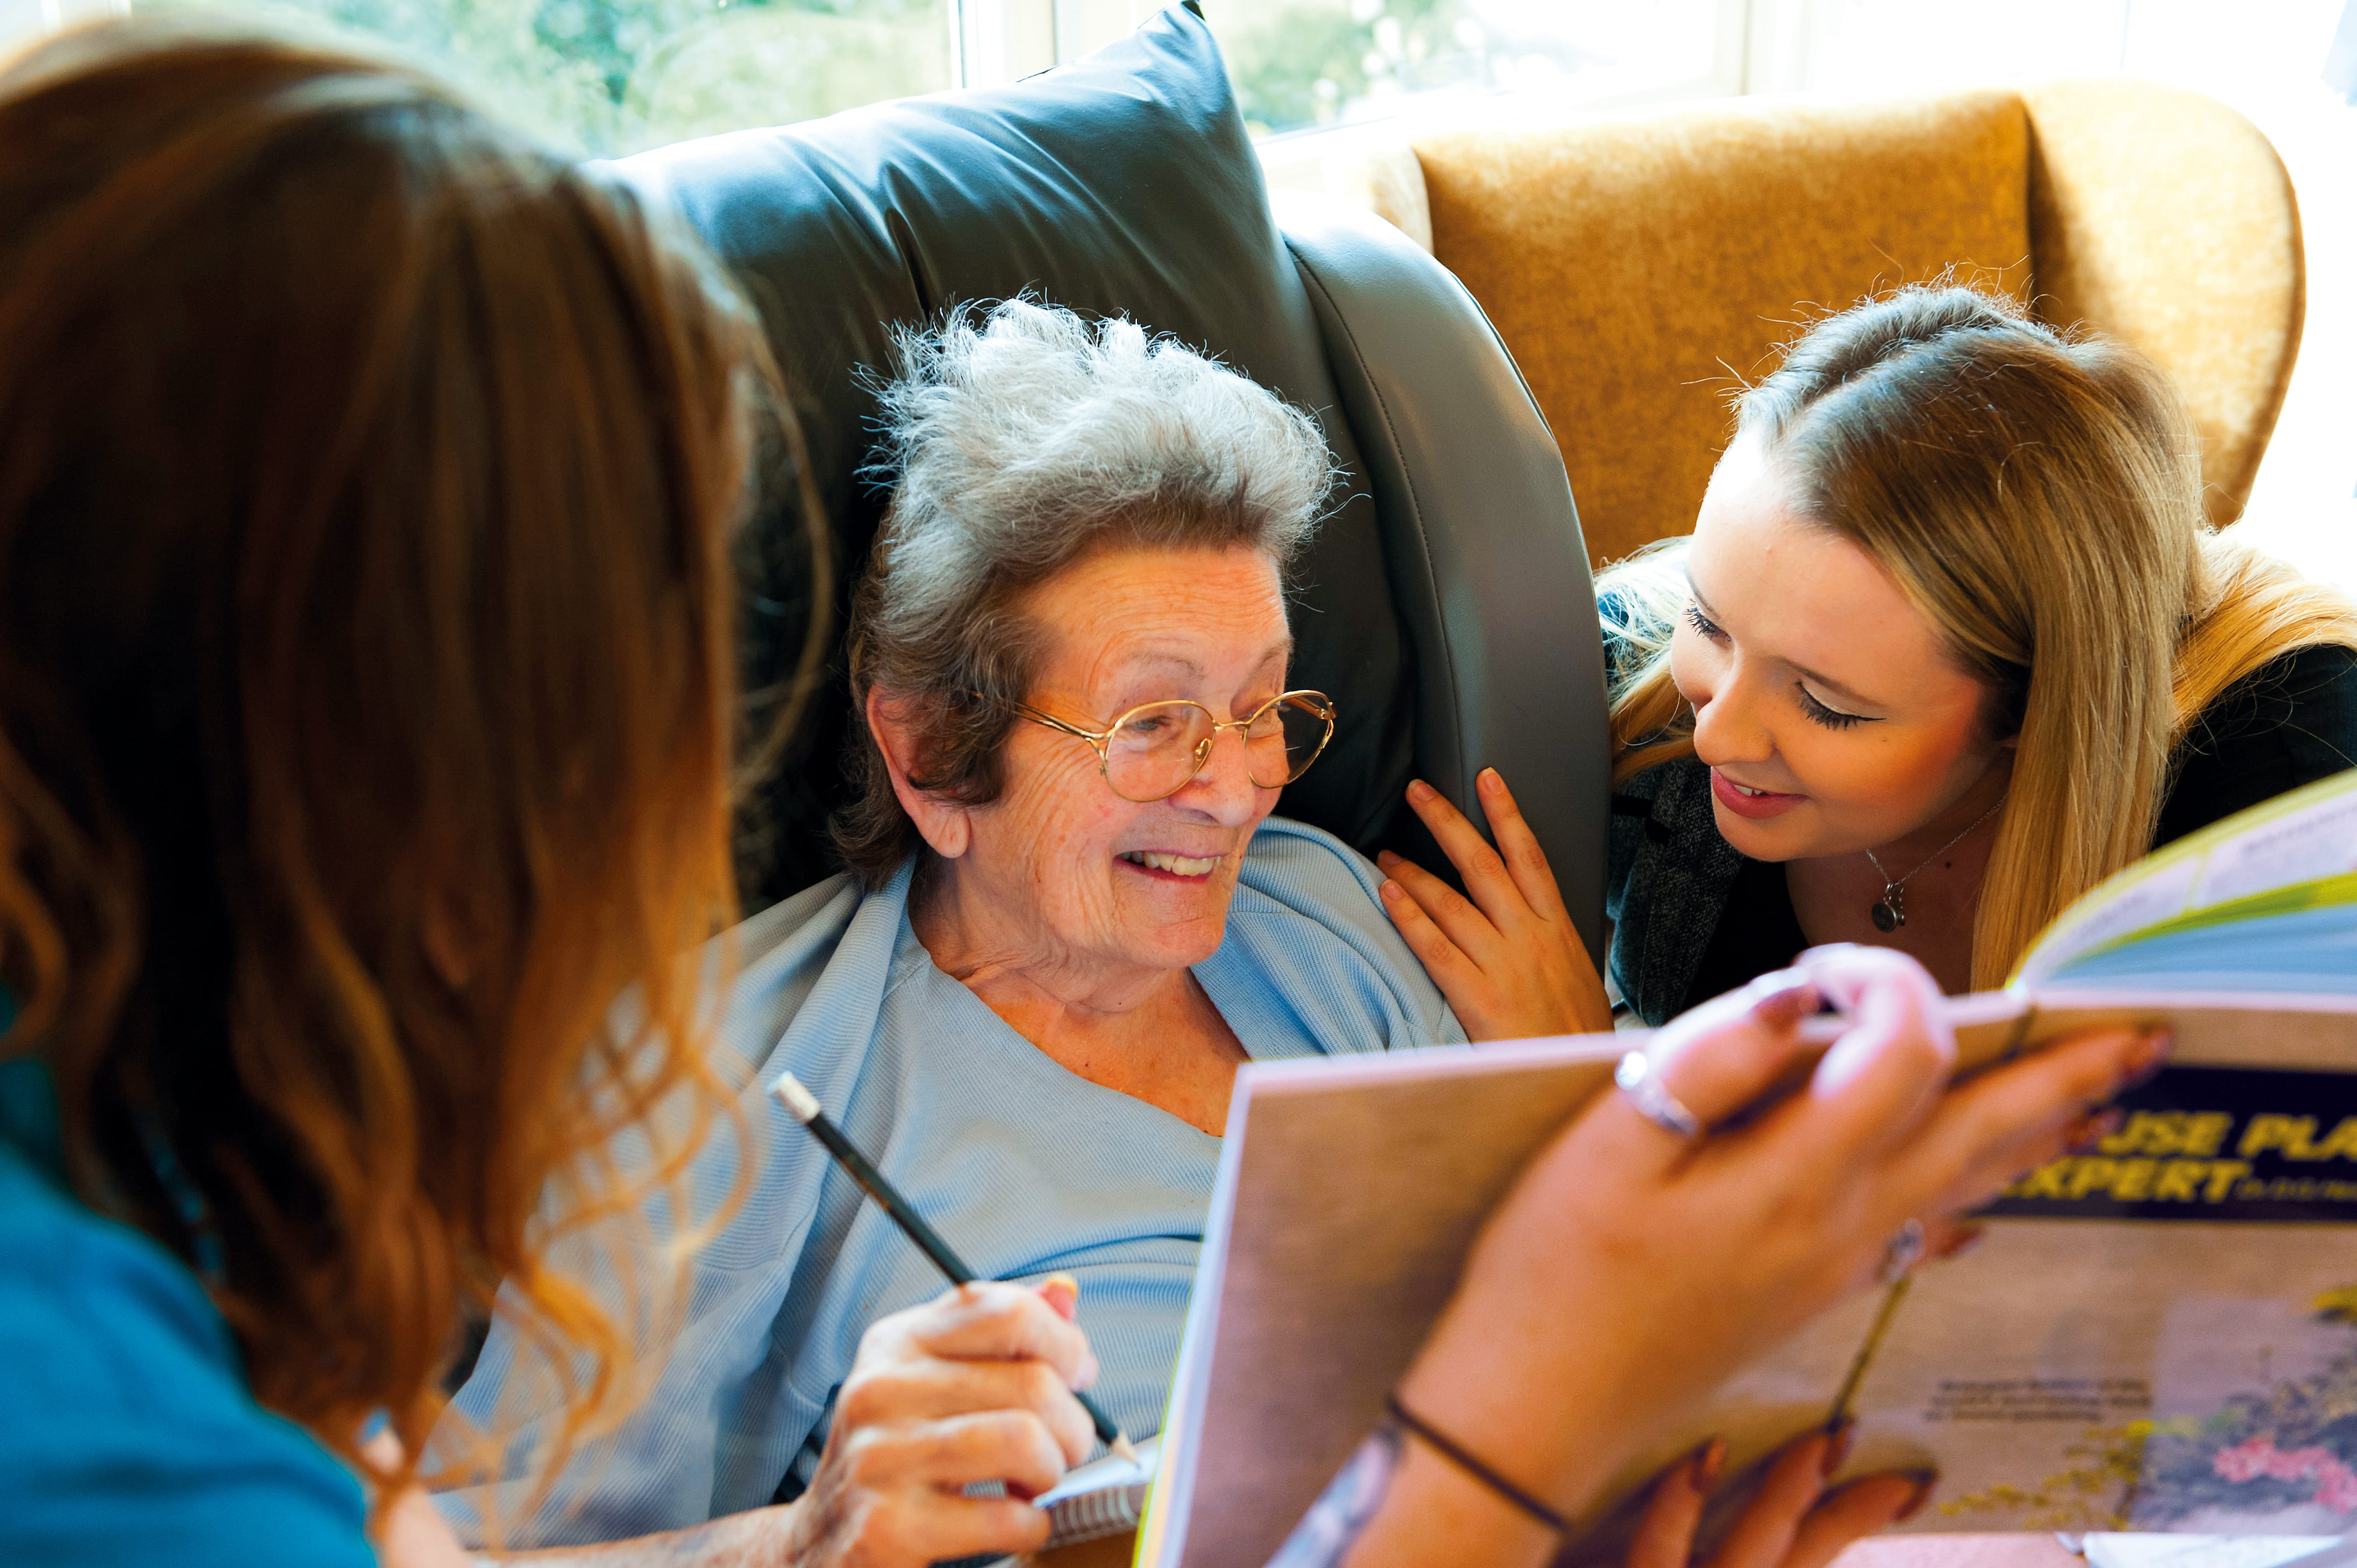 Orchard Care Homes puts some Oomph! into its care homes with innovative partnership!